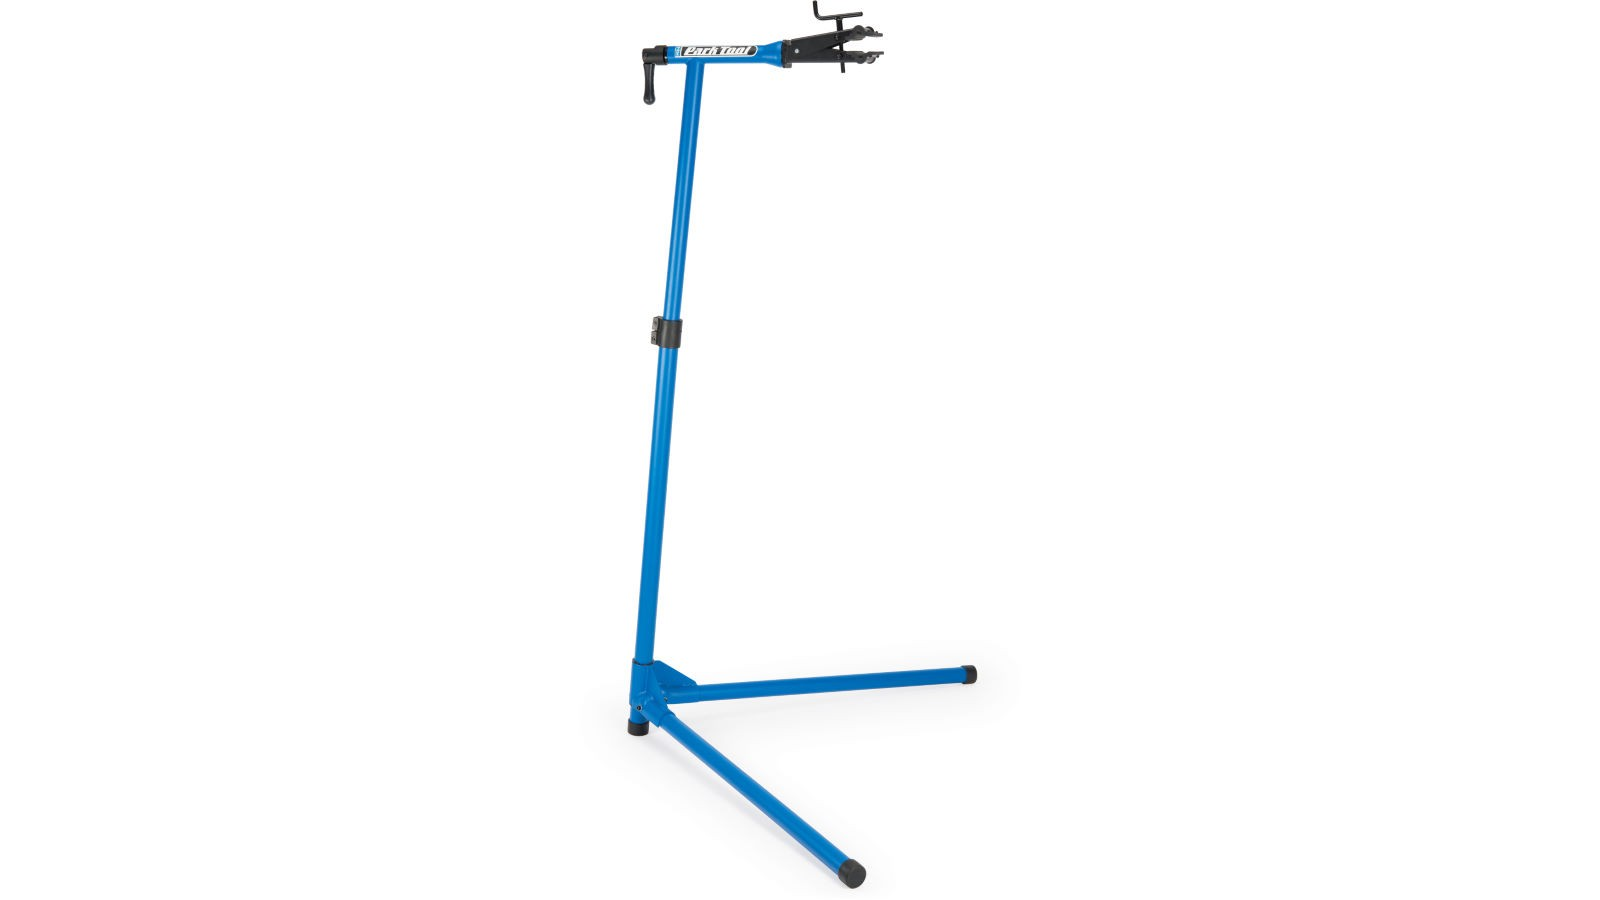 A workstand is great for making maintenance easier. This Park Tool model is a solid option